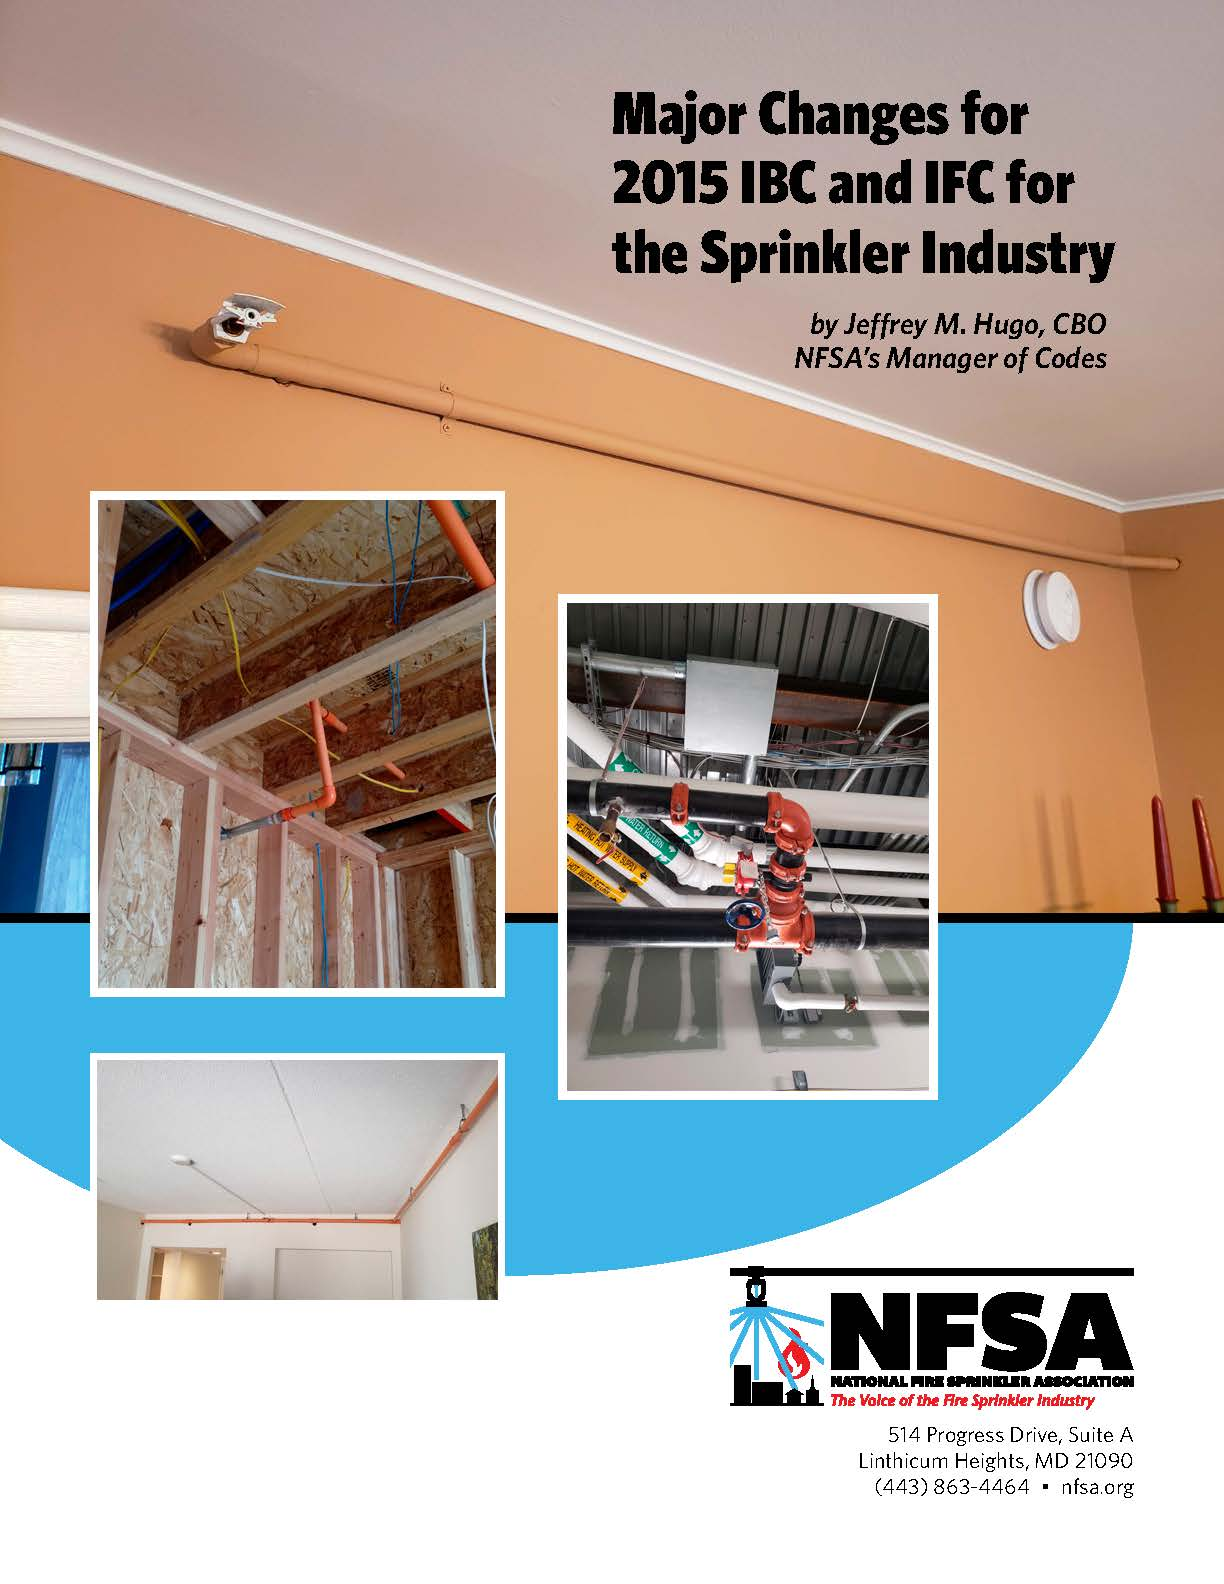 NFSA Guide, Automatic Sprinkler Systems (ICC2015)